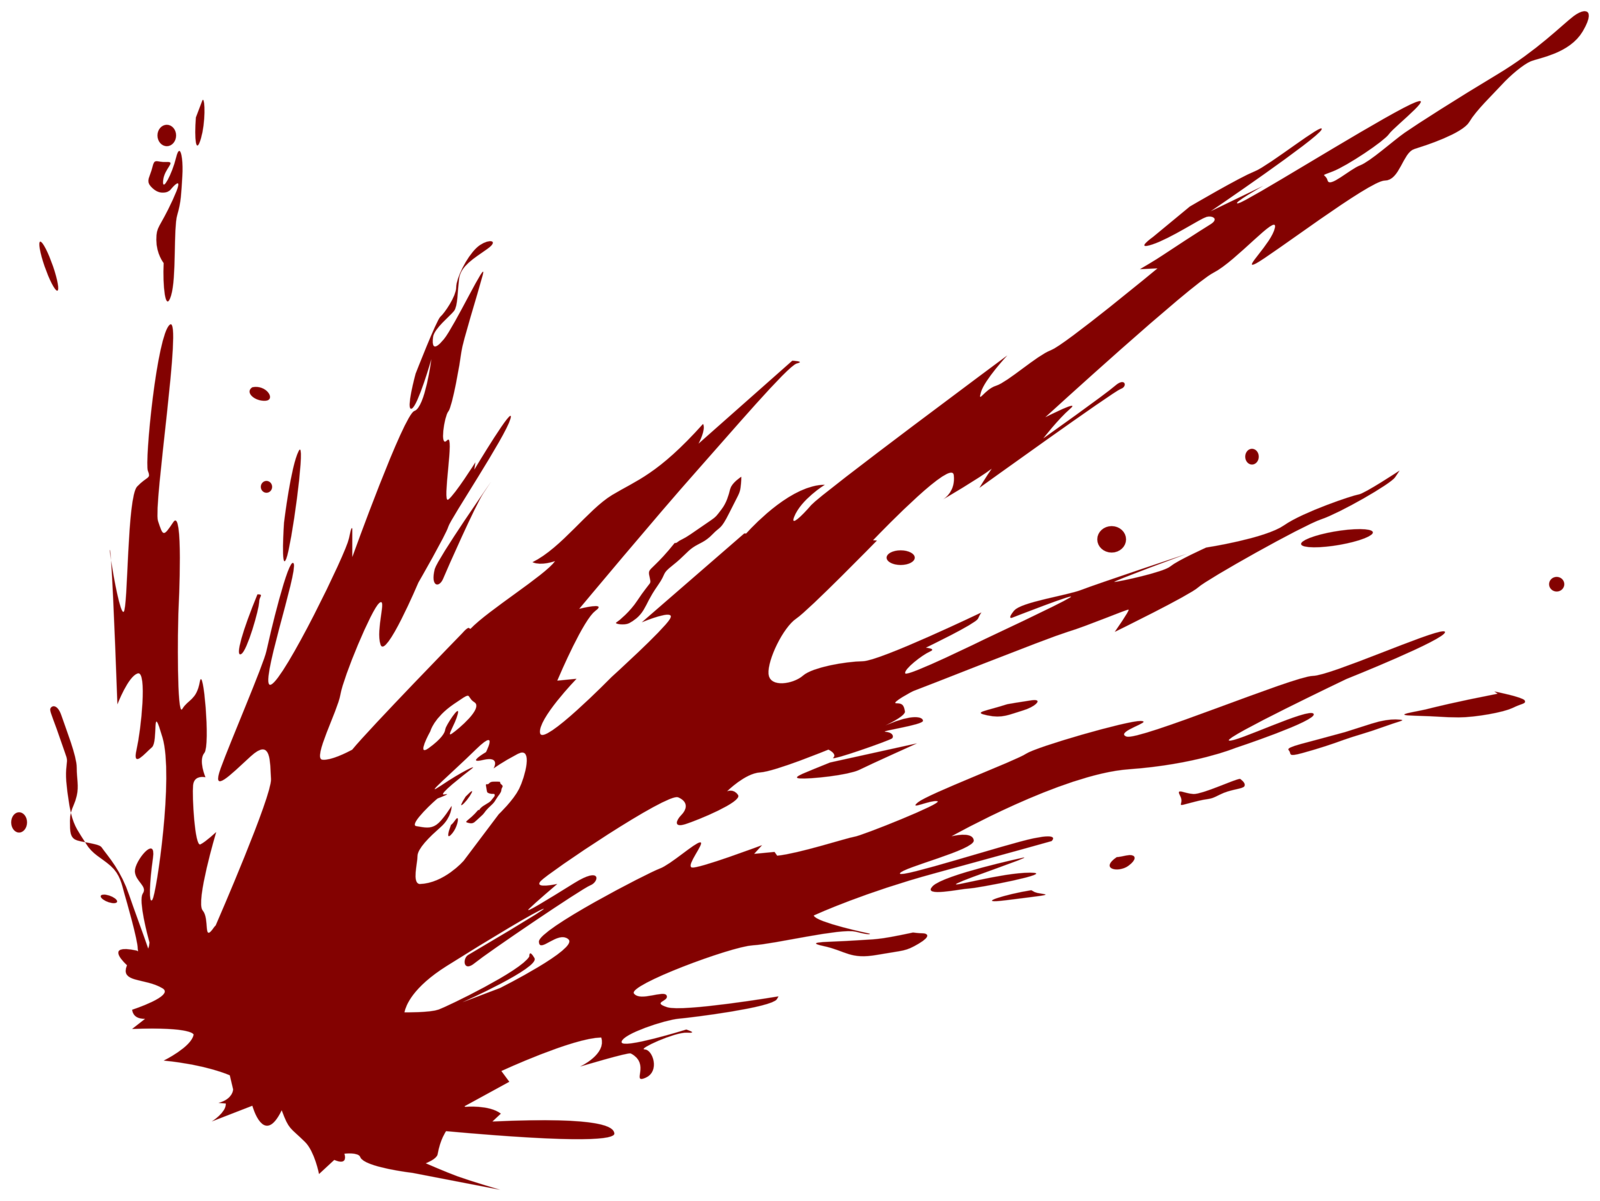 Splatter clipart burst ClipArt Picture Png Blood Free